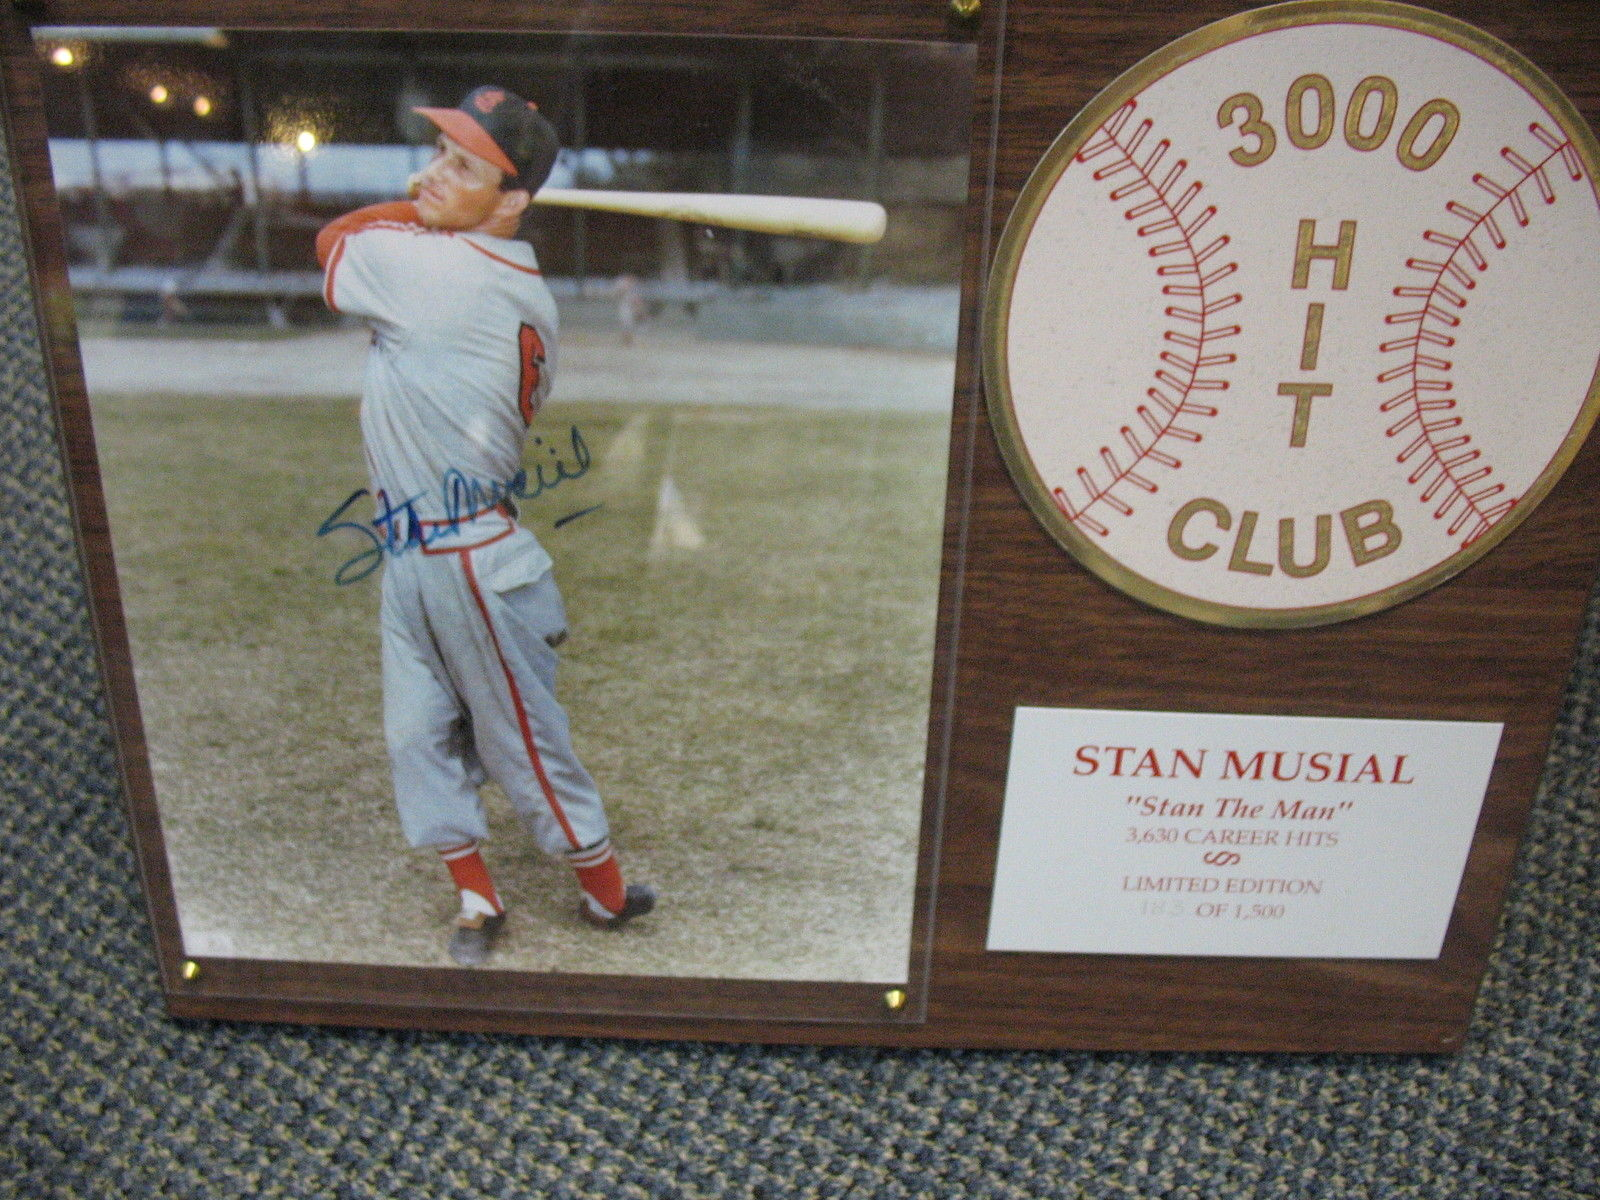 Stan Musial Autographed 8X10 183/500 Wood Plaque